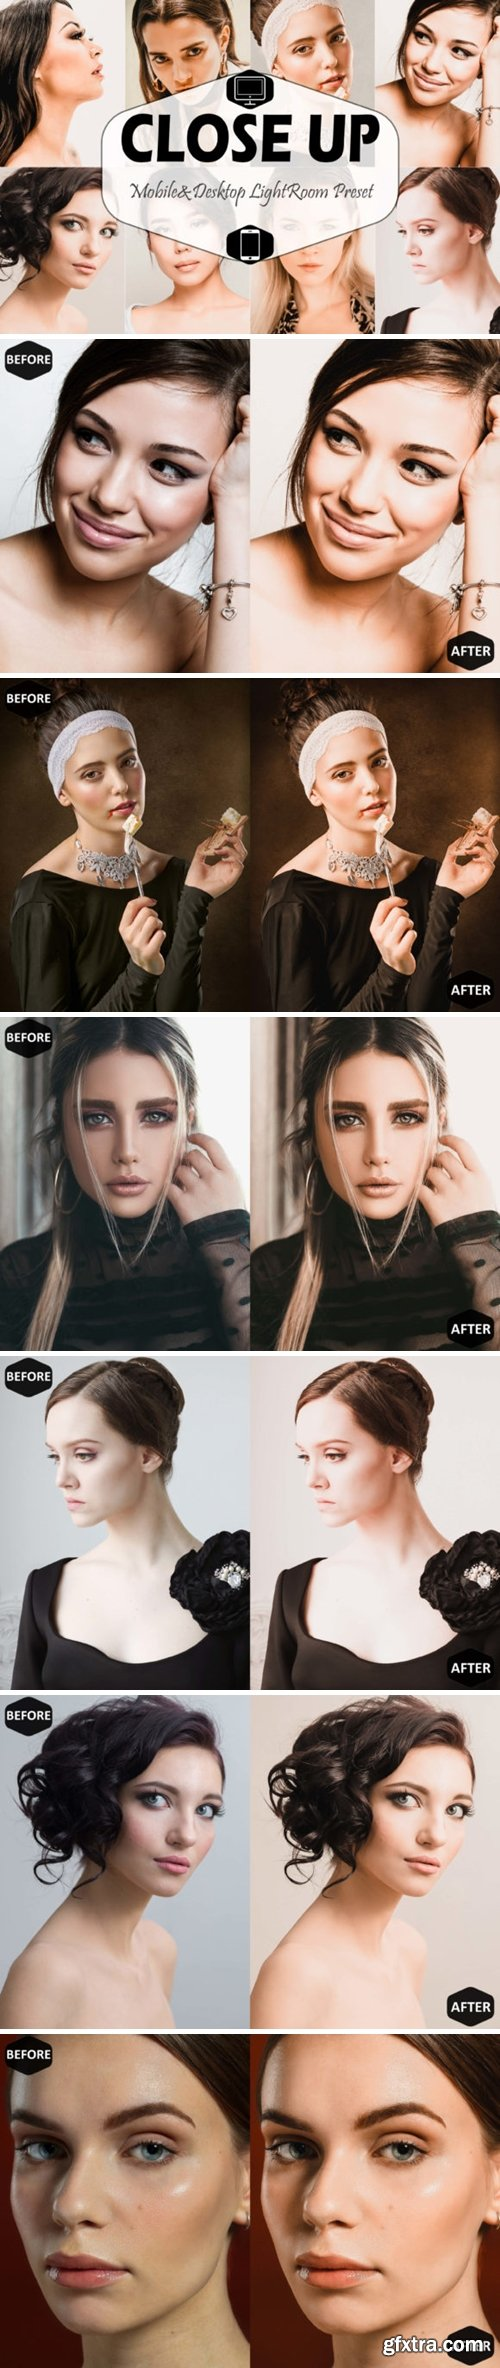 Close Up Mobile Desktop Lightroom Preset 1629239